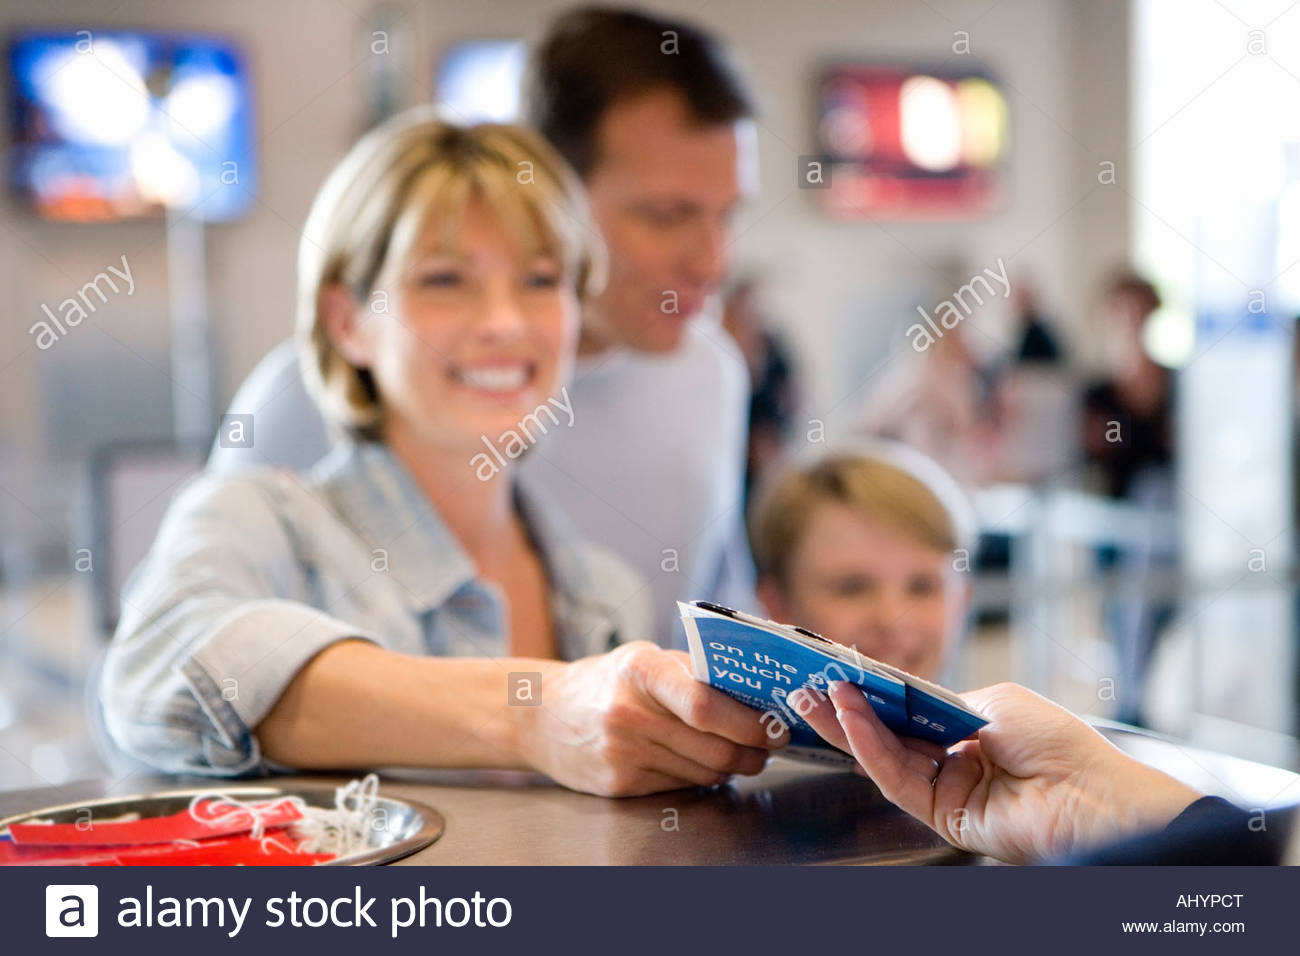 Family standing at airport check-in desk, woman receiving boarding passes from check-in attendant, smiling, focus - Stock Image